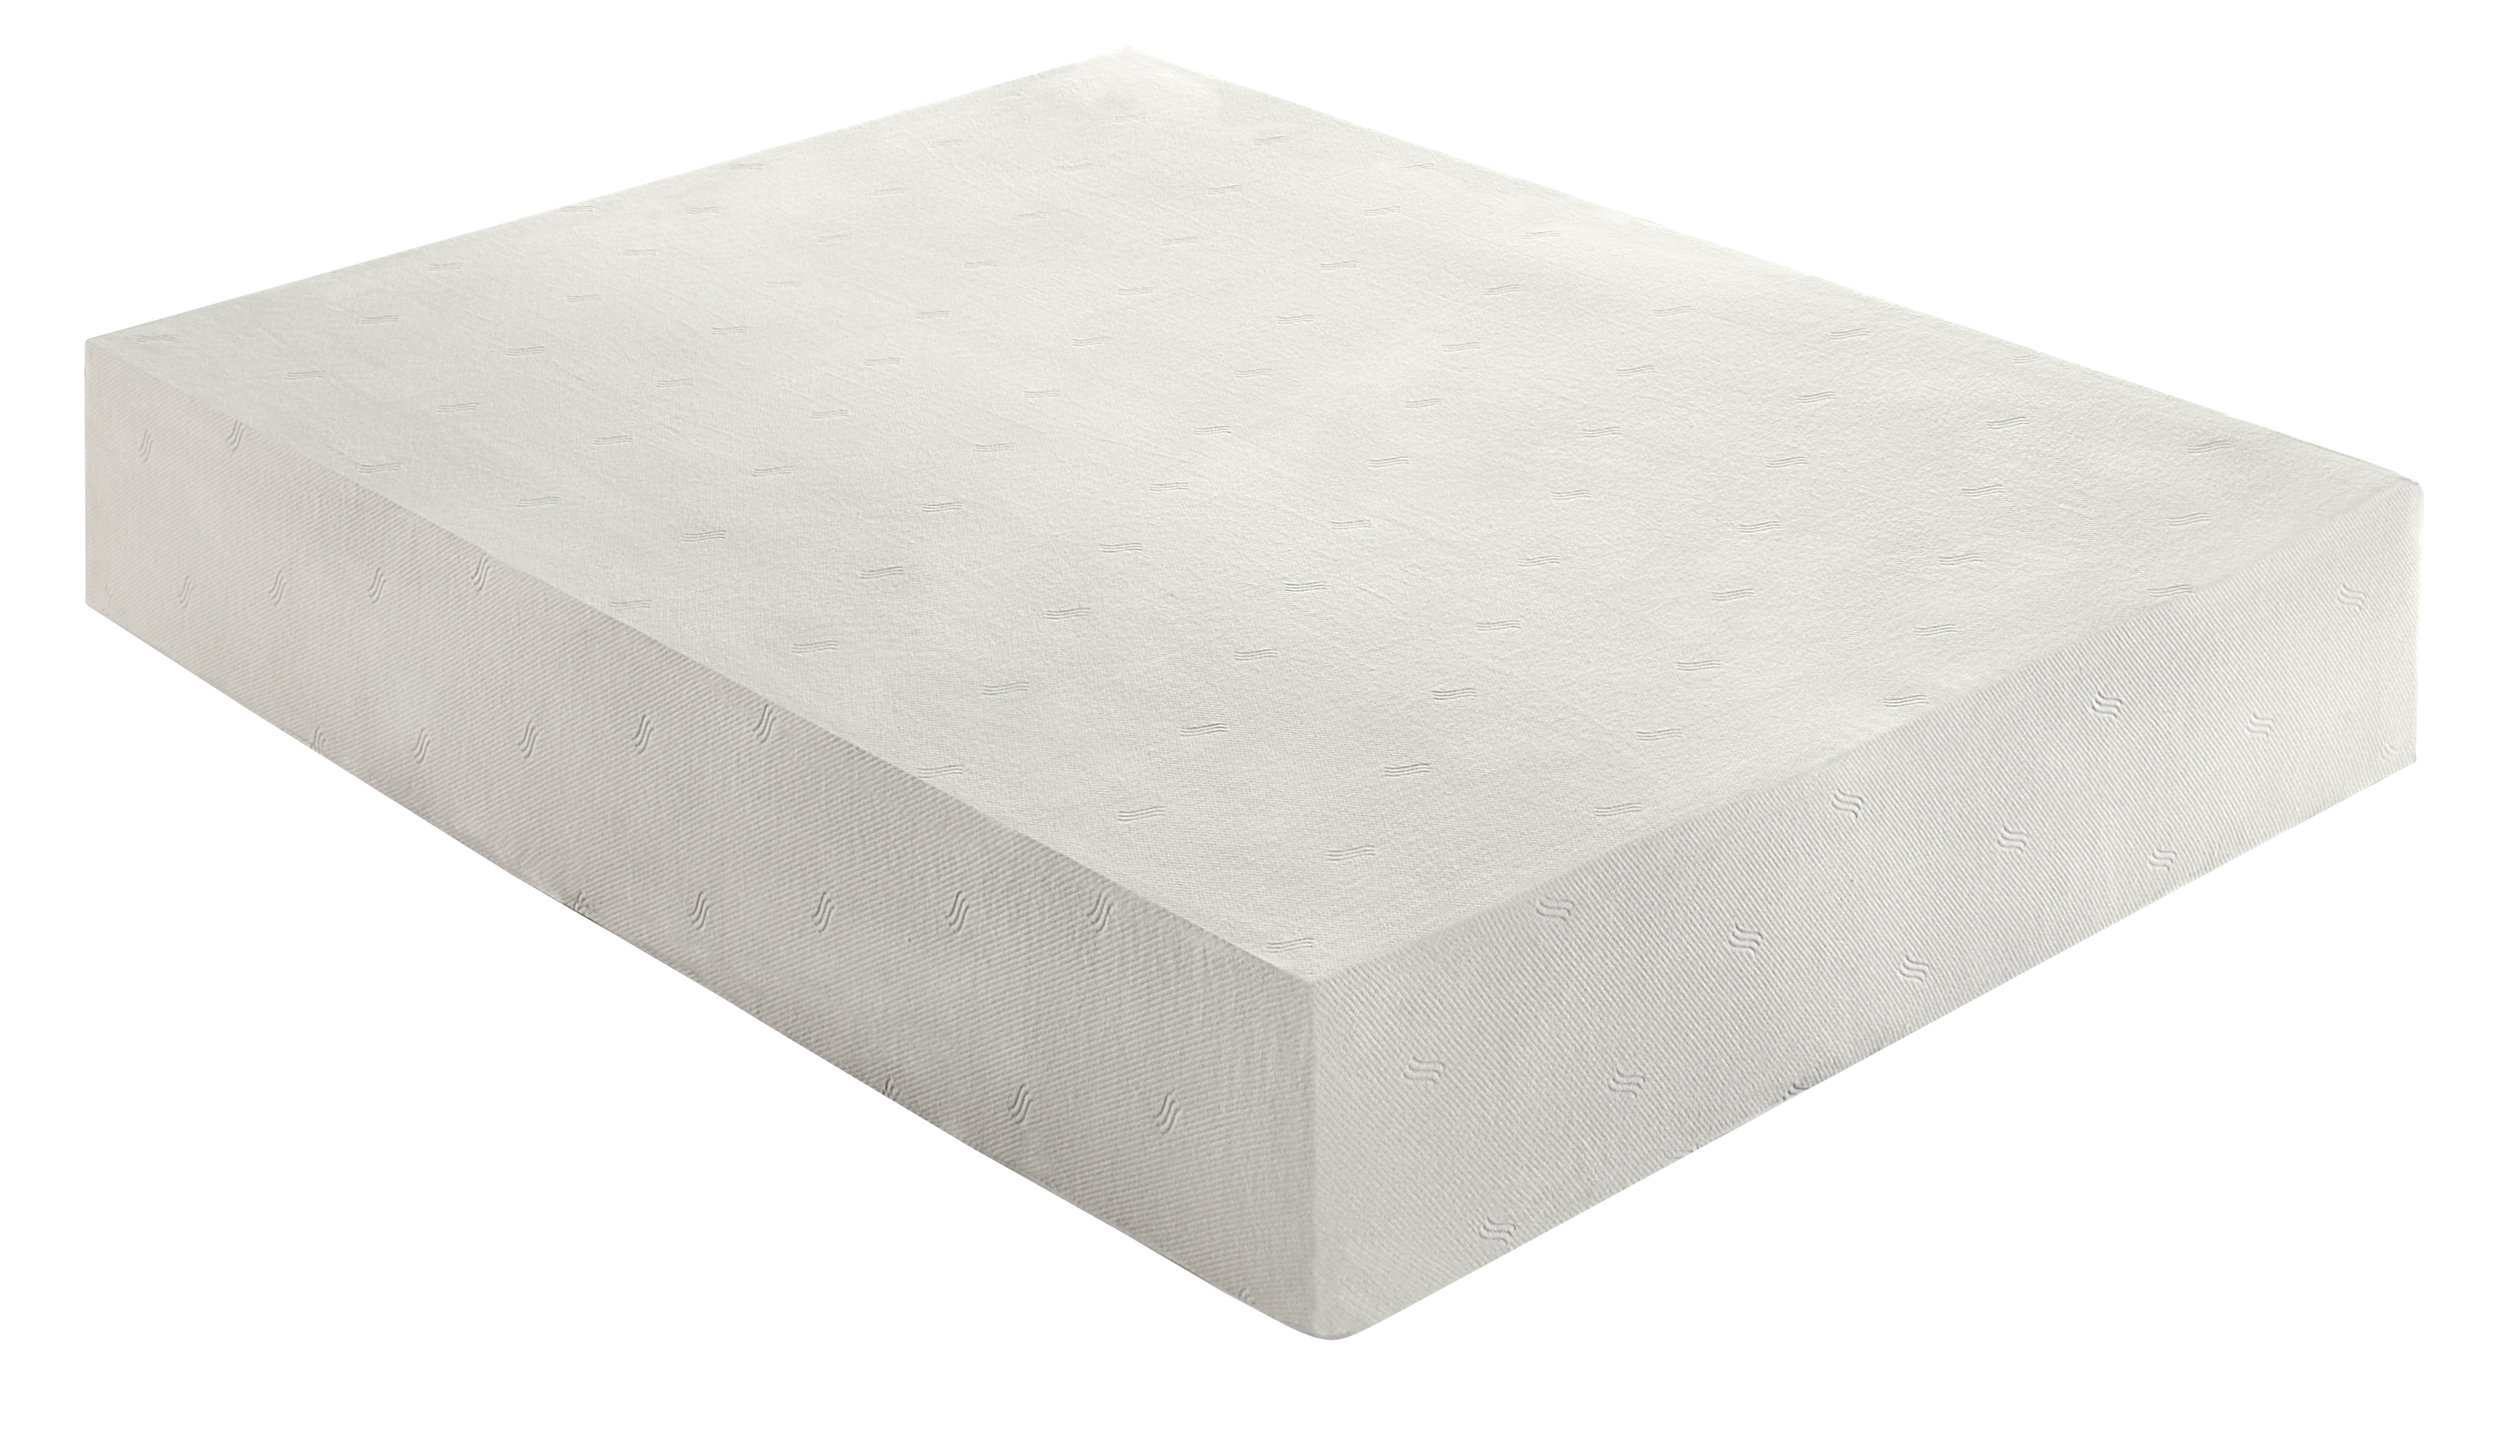 Sleep Innovations 12 – inch SureTemp Memory Foam Mattress